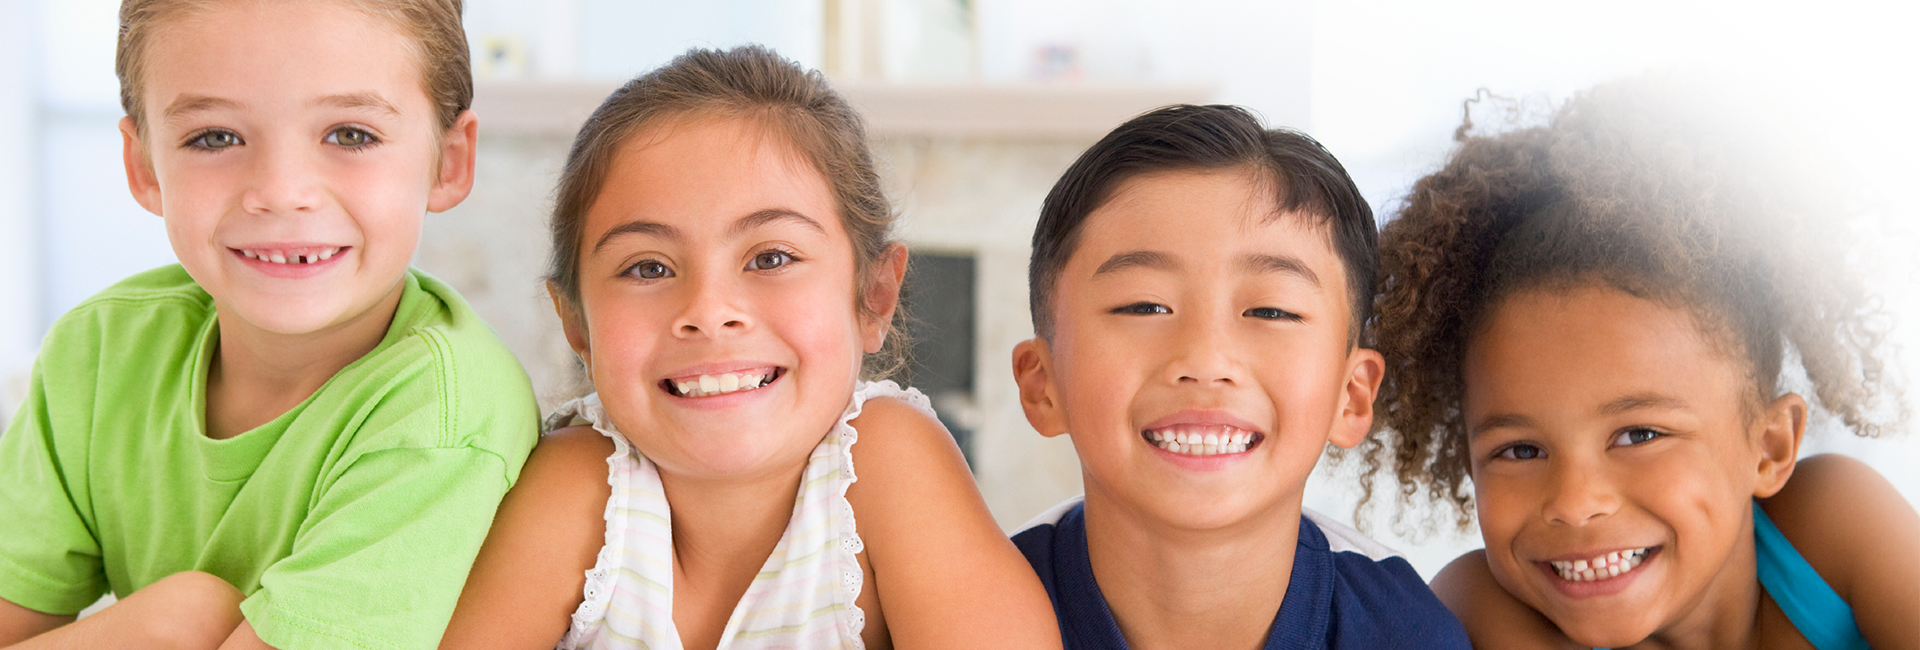 Dr. Weston Spencer provides pediatric dentistry for kids in La Jolla.